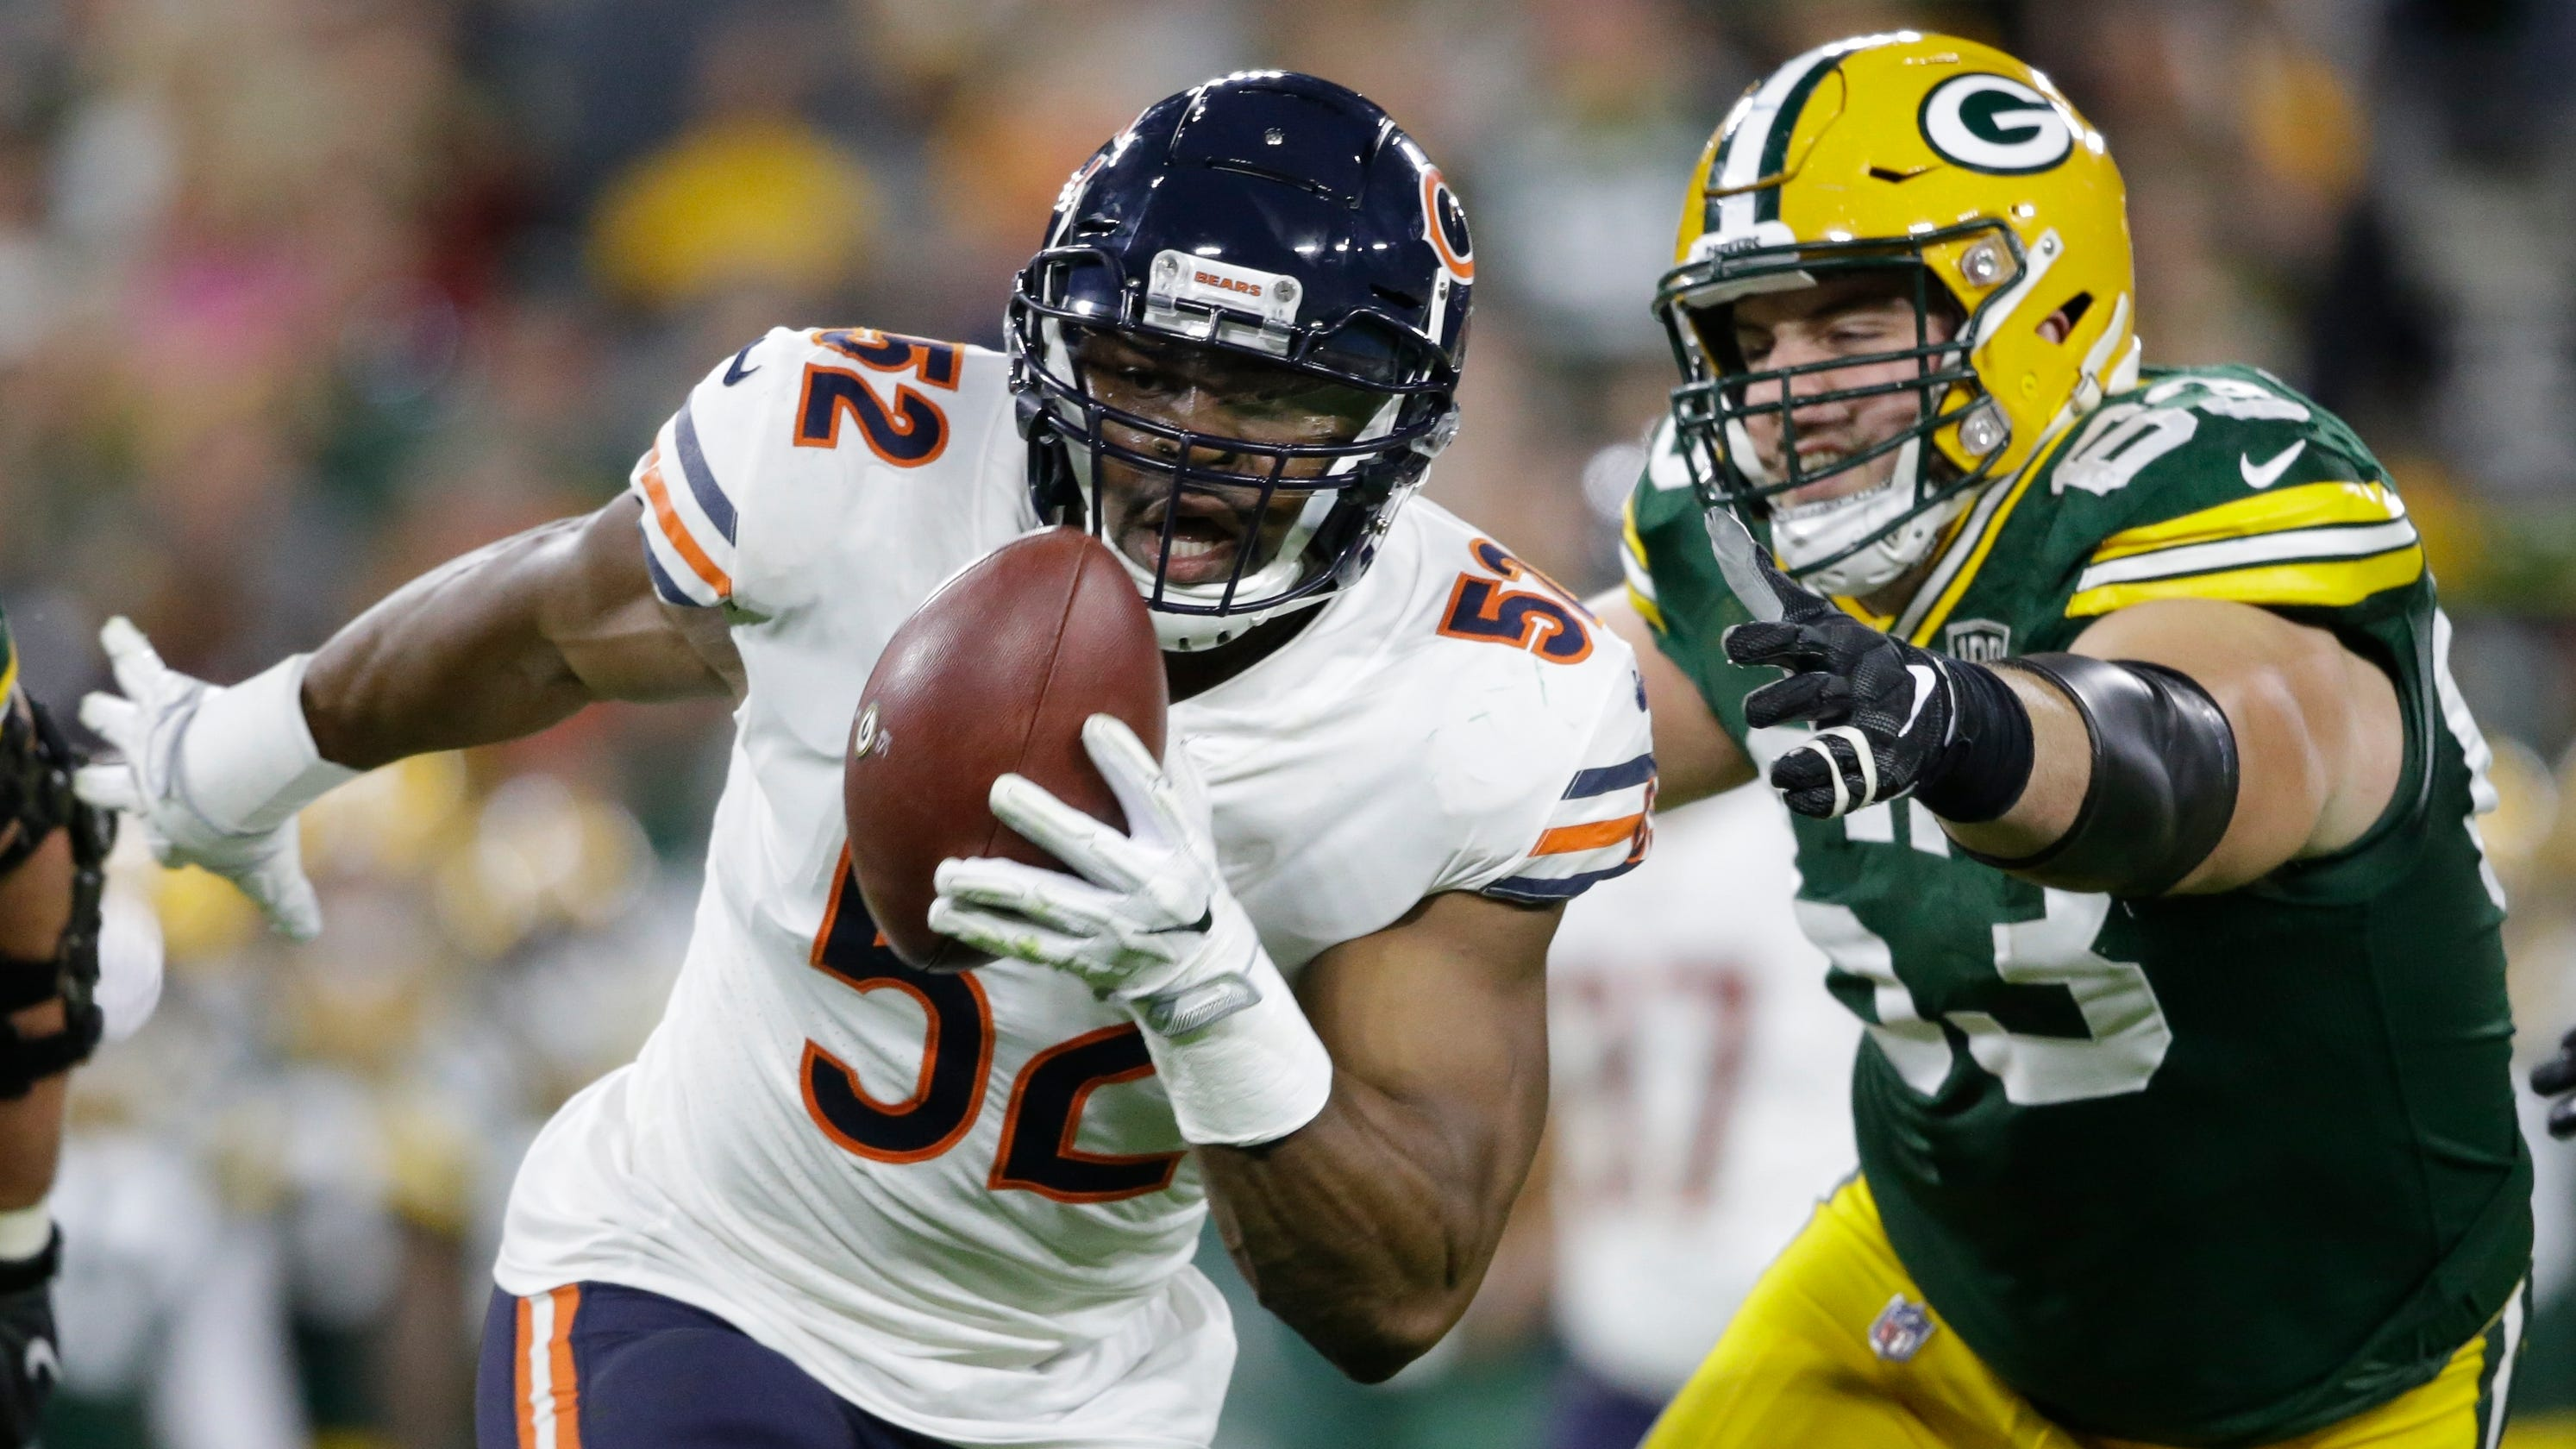 Khalil Mack s Chicago Bears debut a dominant performance vs. Packers d92f67197